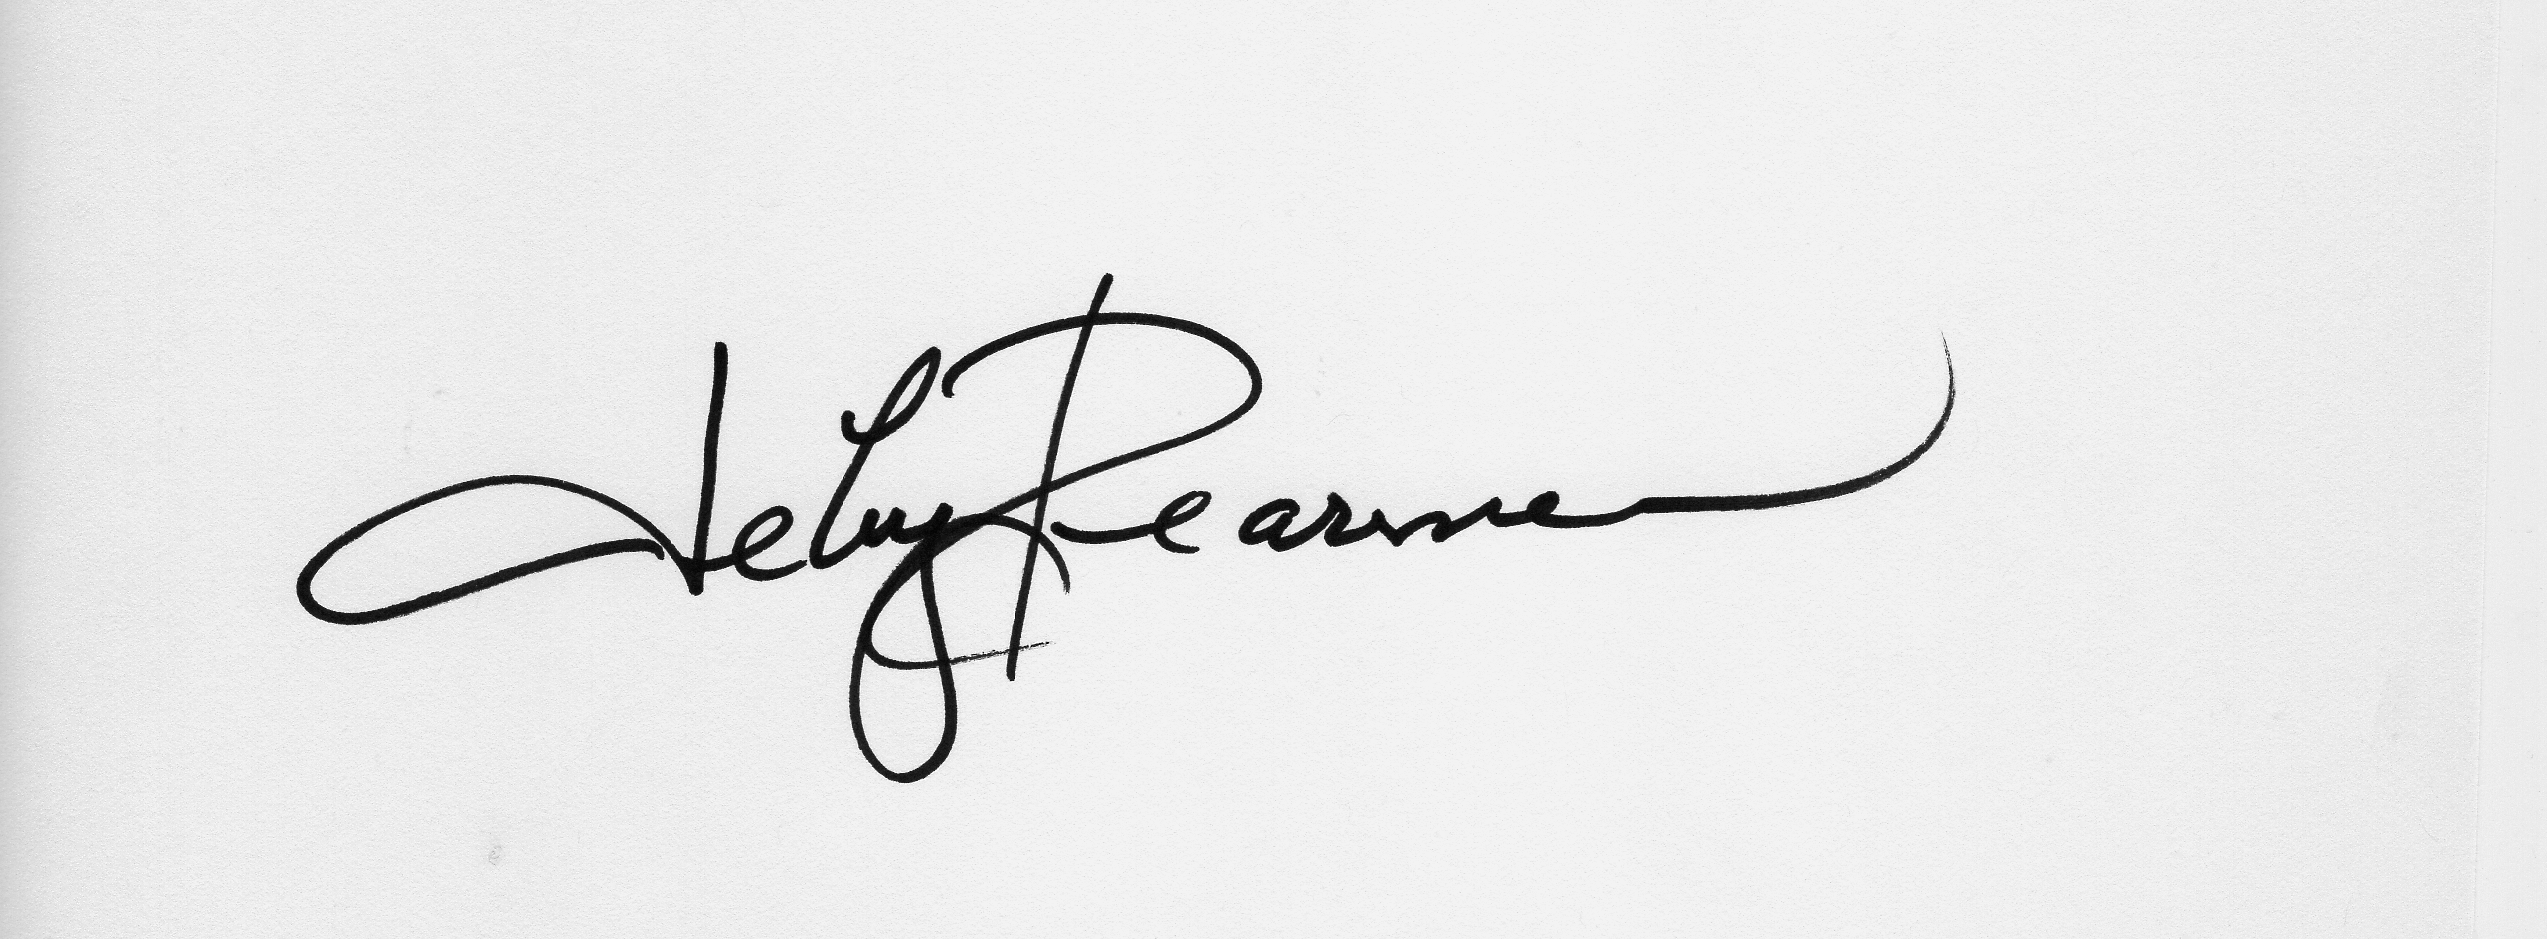 Deby Dearman's Signature